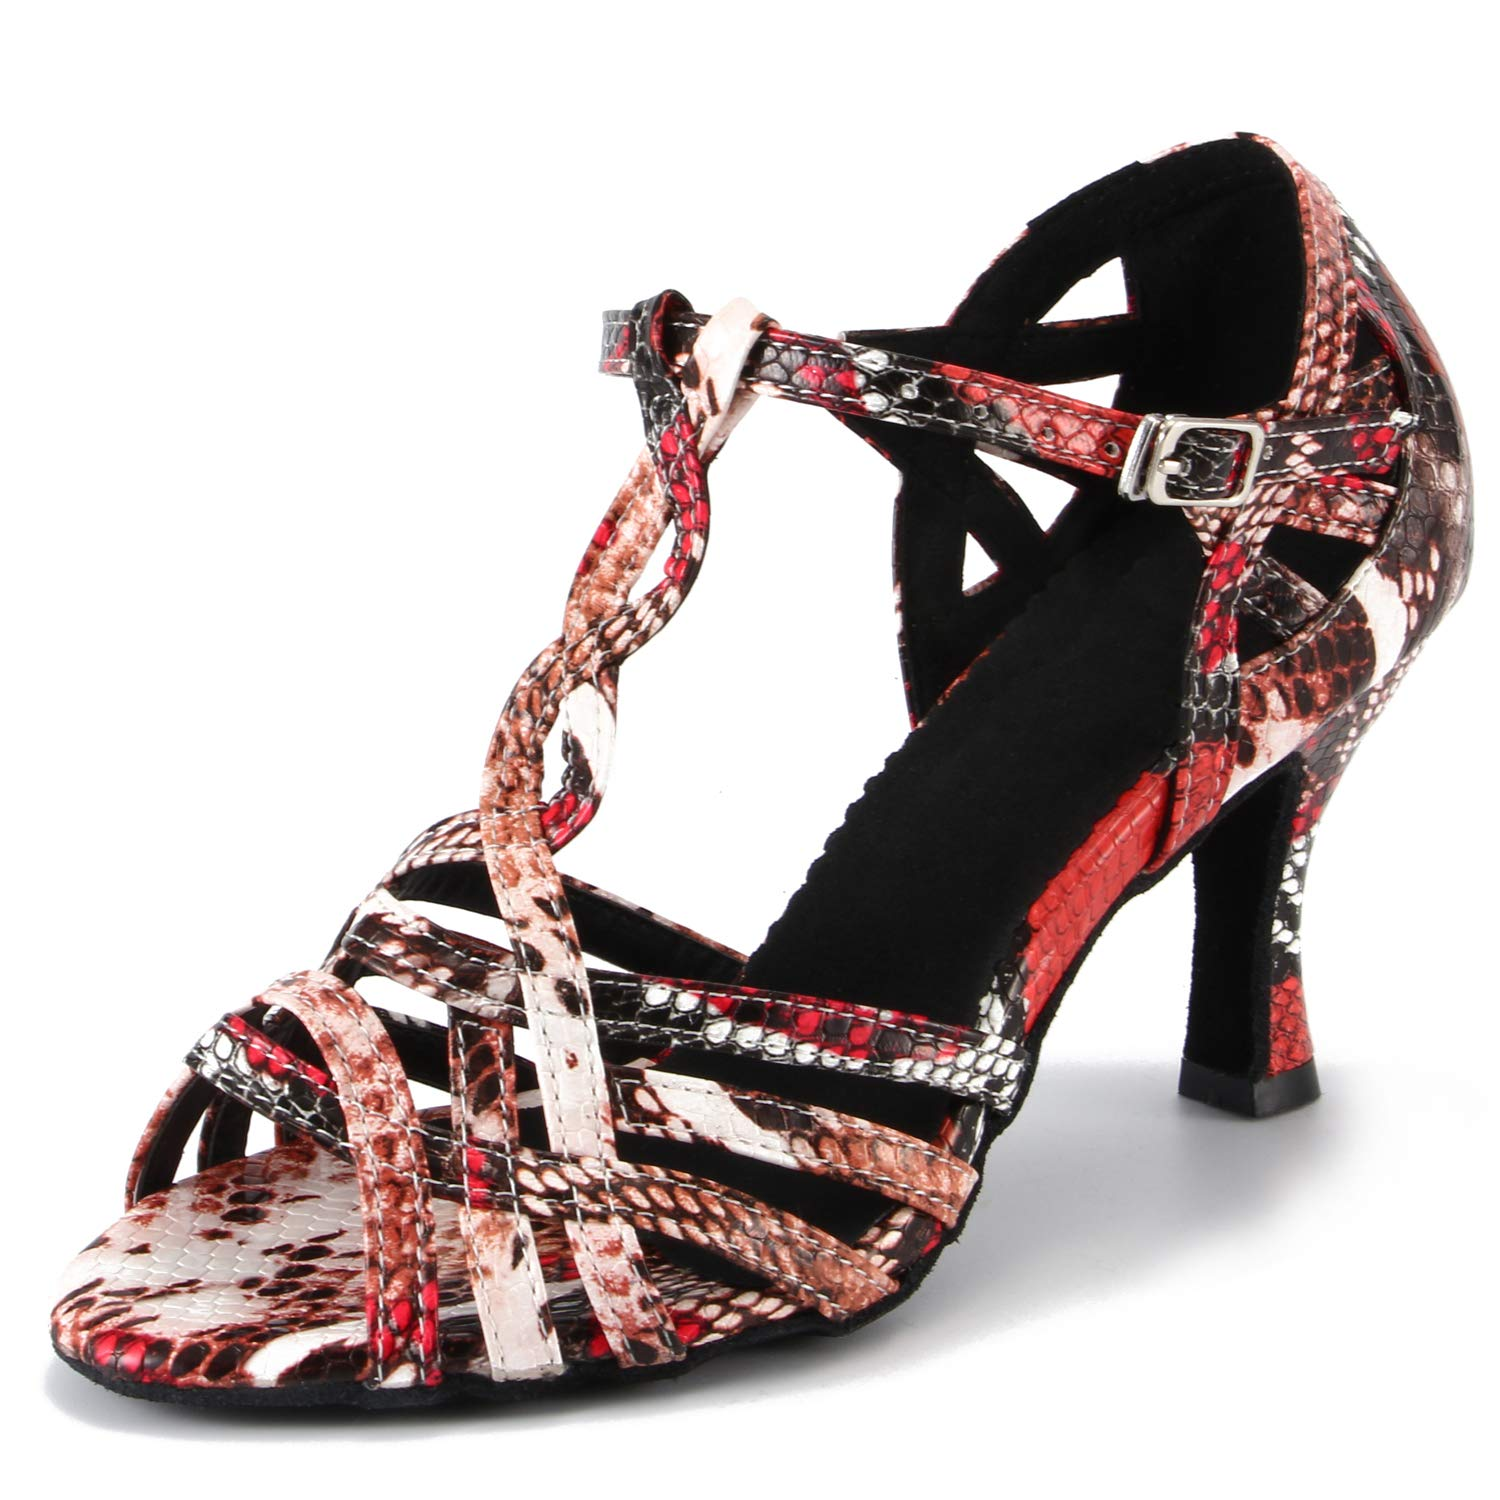 LOVELY BEAUTY Ladys Ballroom Dance Shoes for Chacha Latin Salsa Rumba Practice